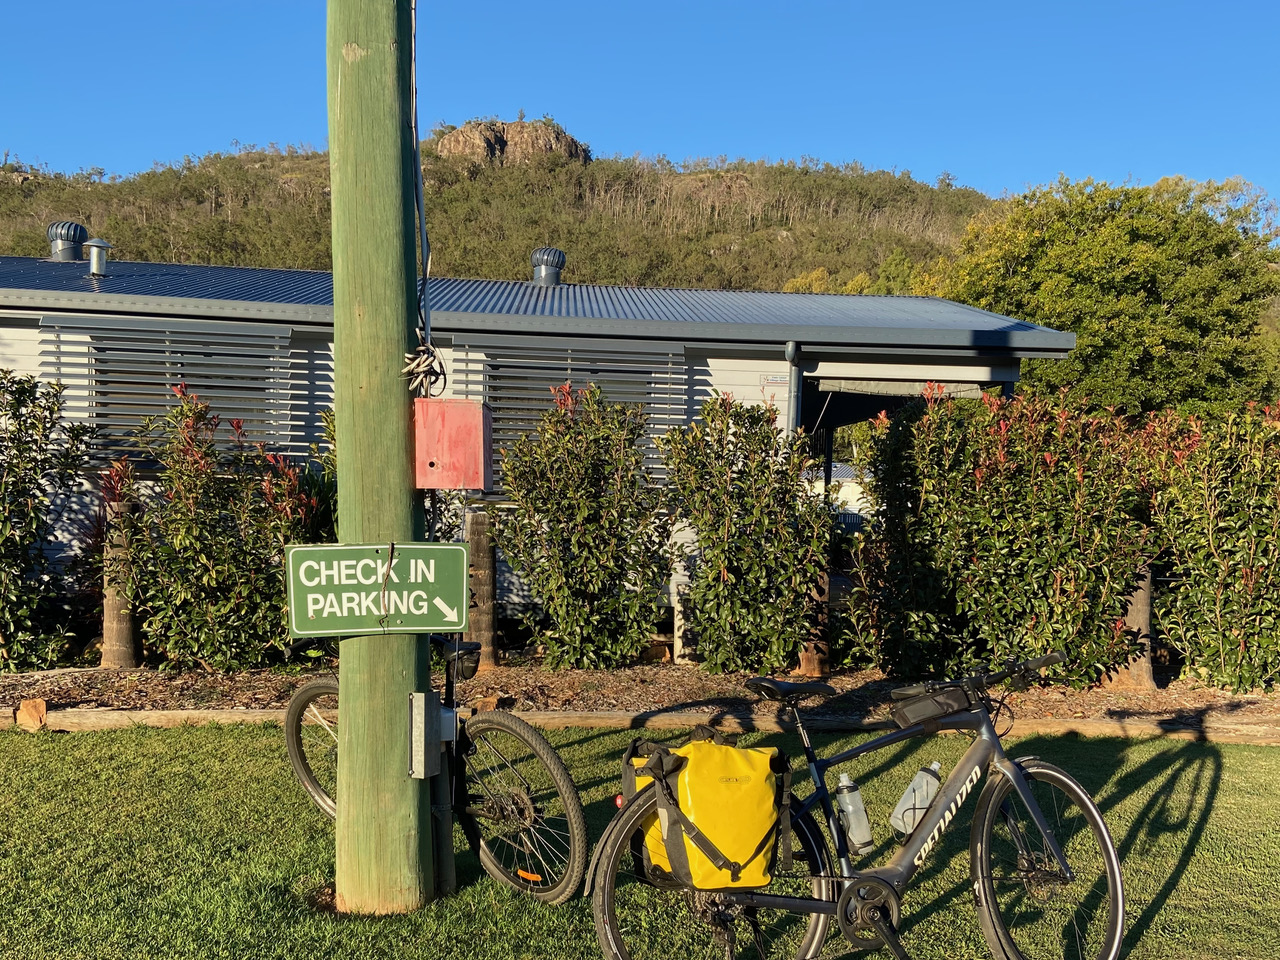 Check-In Parking :-) at Esk Caravan Park with Mt Glen Rock in the background.